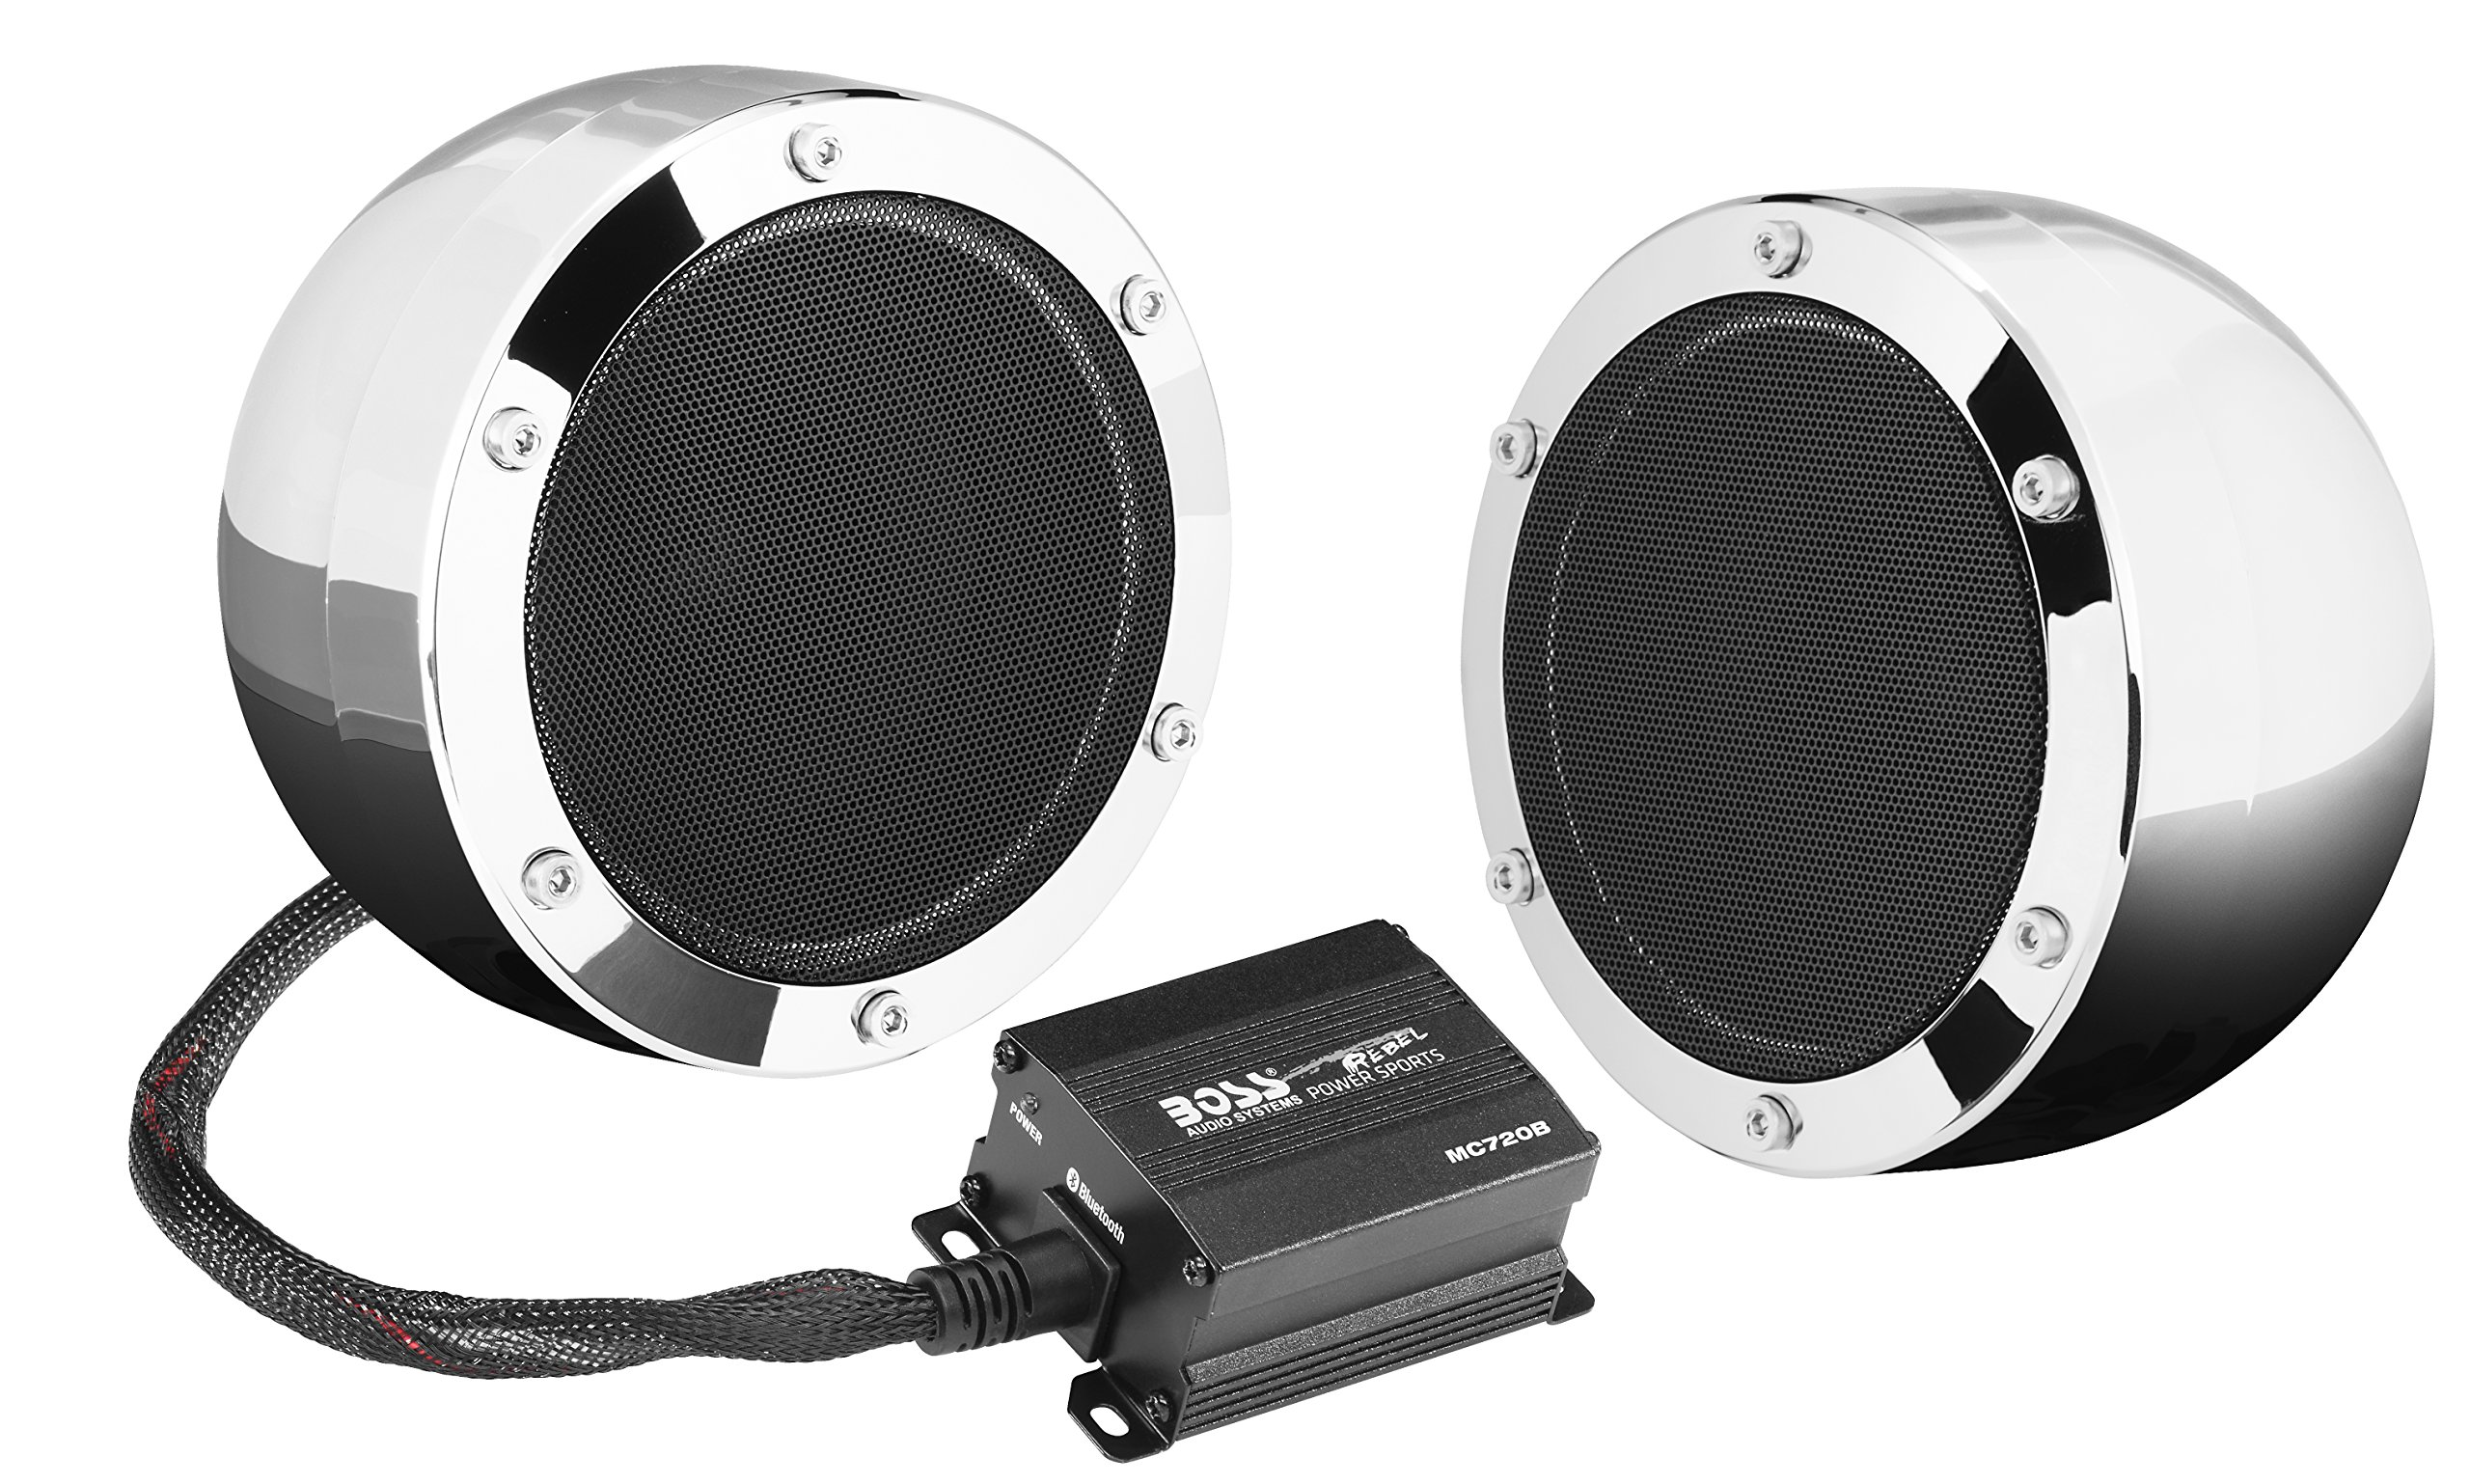 BOSS Audio MC720B Bluetooth, Weatherproof Speaker And Amplifier Sound System, Two 4 Inch Speakers, Bluetooth Amplifier, Inline Volume Control, Ideal For Motorcycles/ATV and 12 Volt Applications